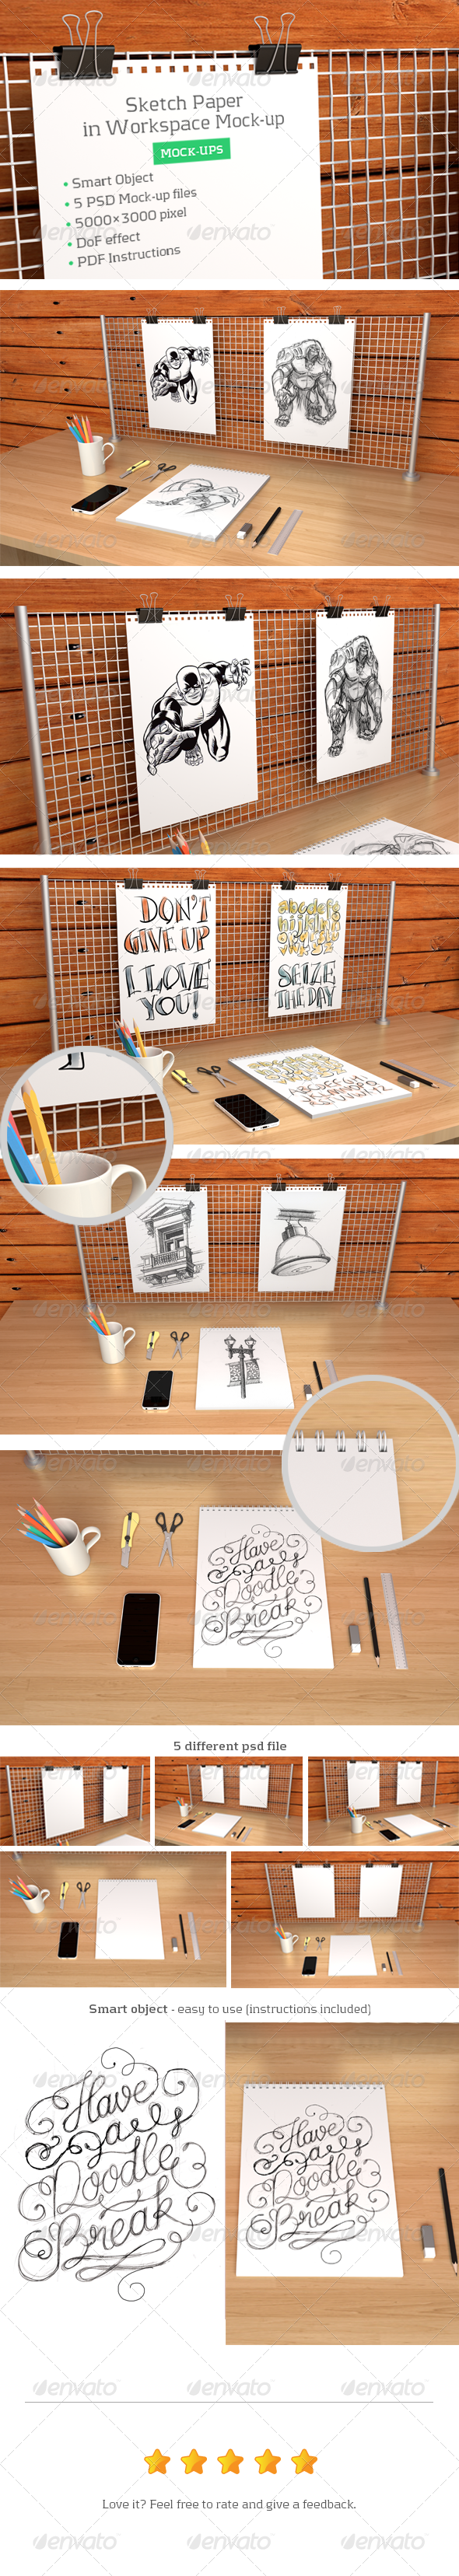 GraphicRiver Sketch Paper in Workspace Mock-up 7890845